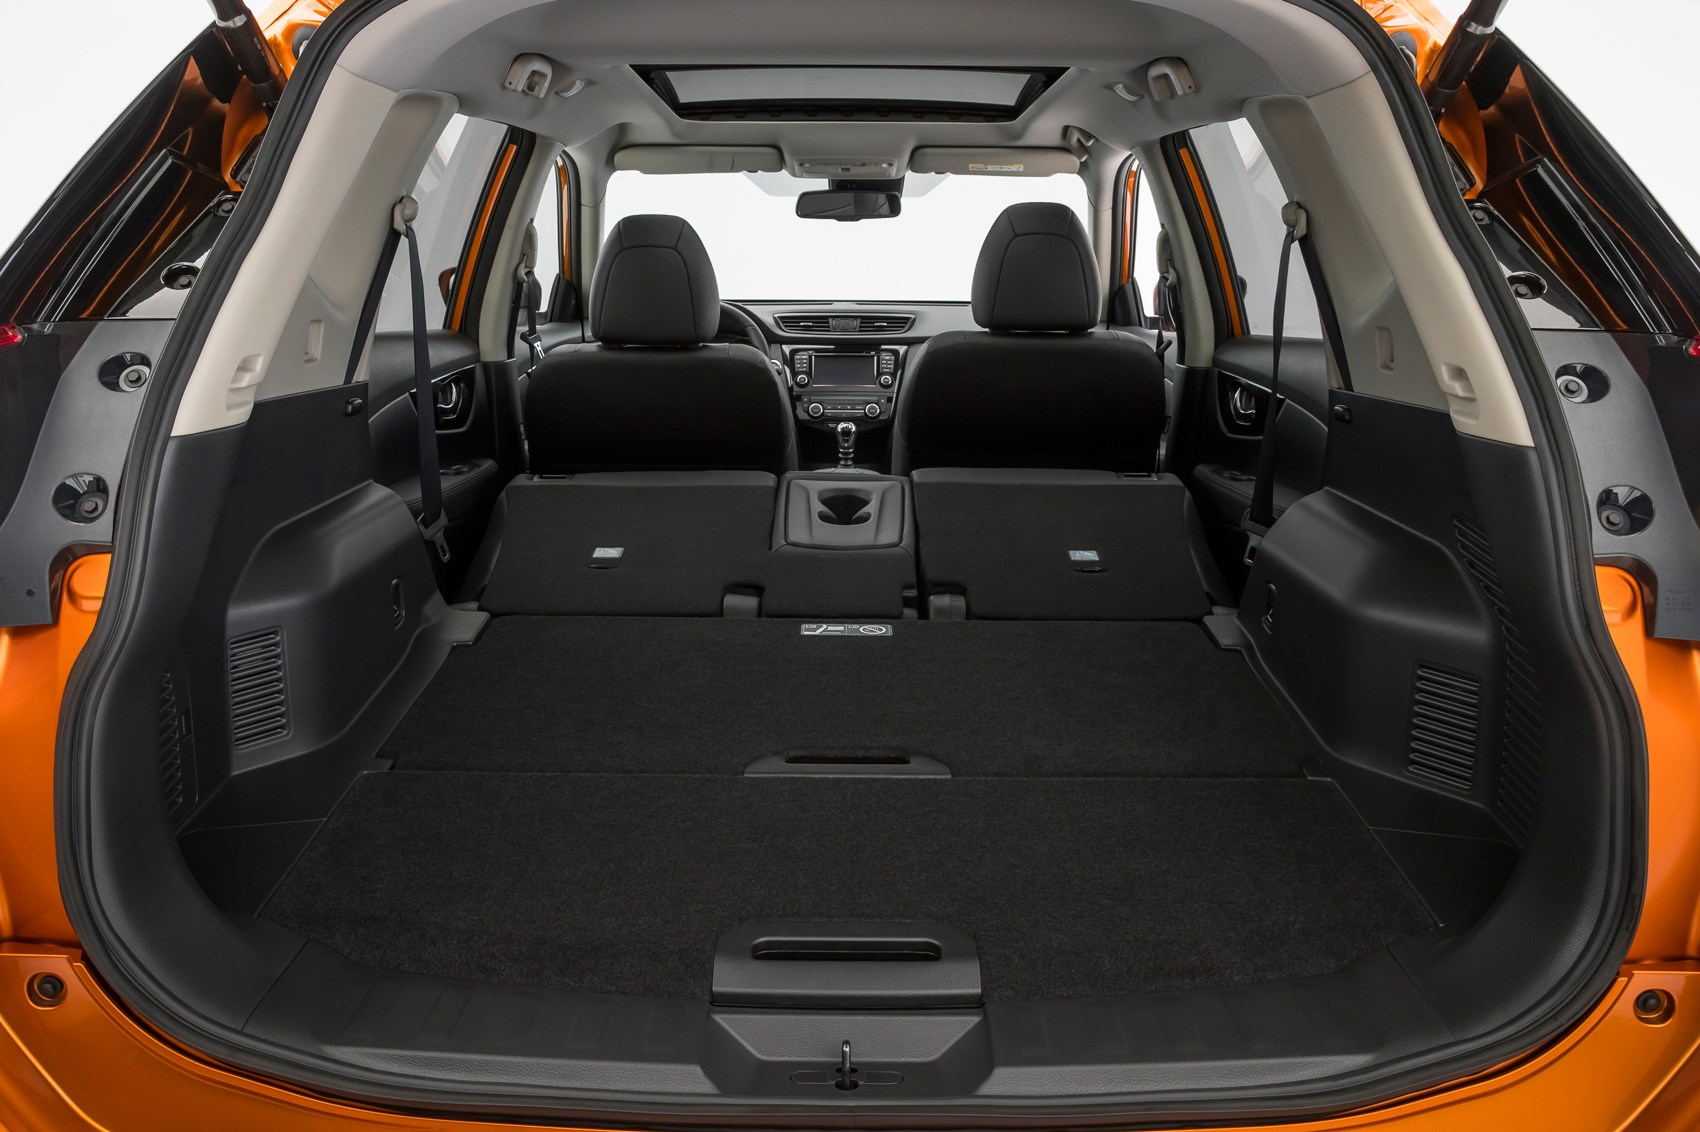 nissan x trail 2017 facelift pictures specs and details by car magazine. Black Bedroom Furniture Sets. Home Design Ideas